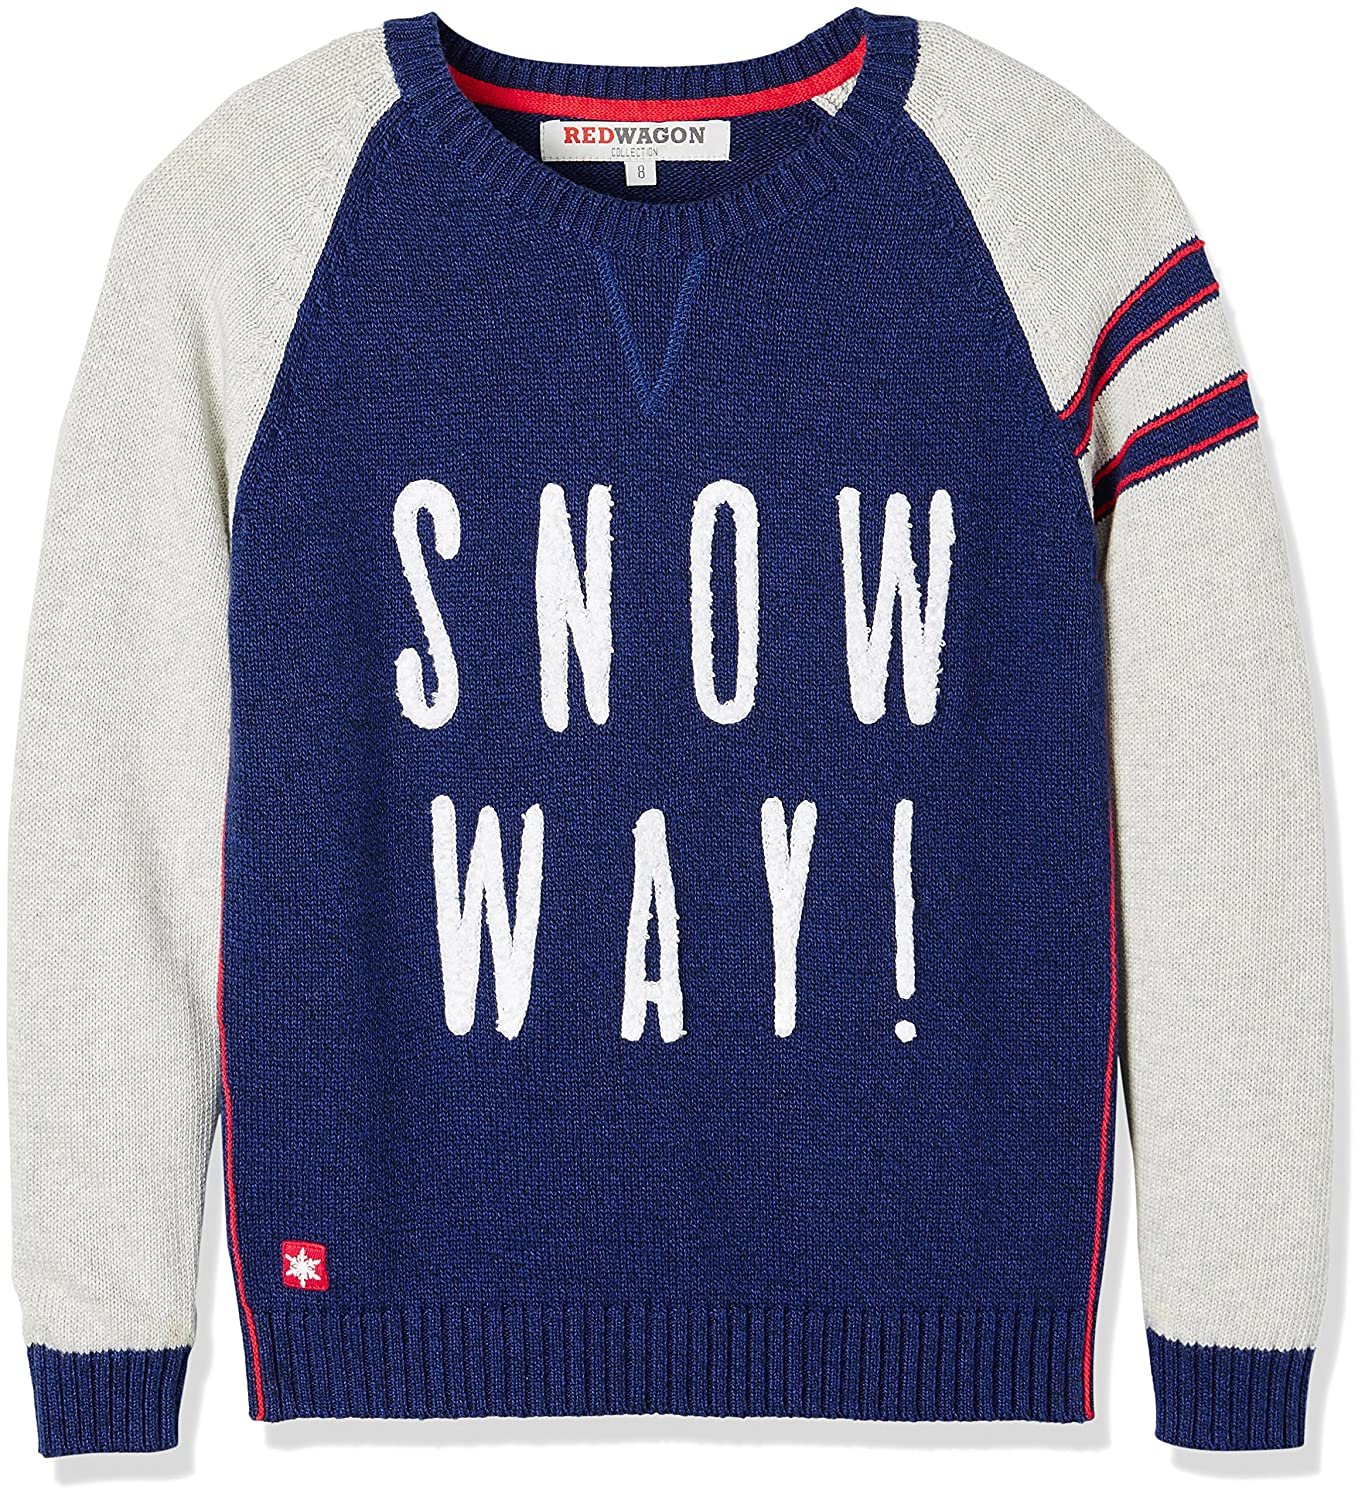 RED WAGON Boy's Snow Way Christmas Jumper 7437